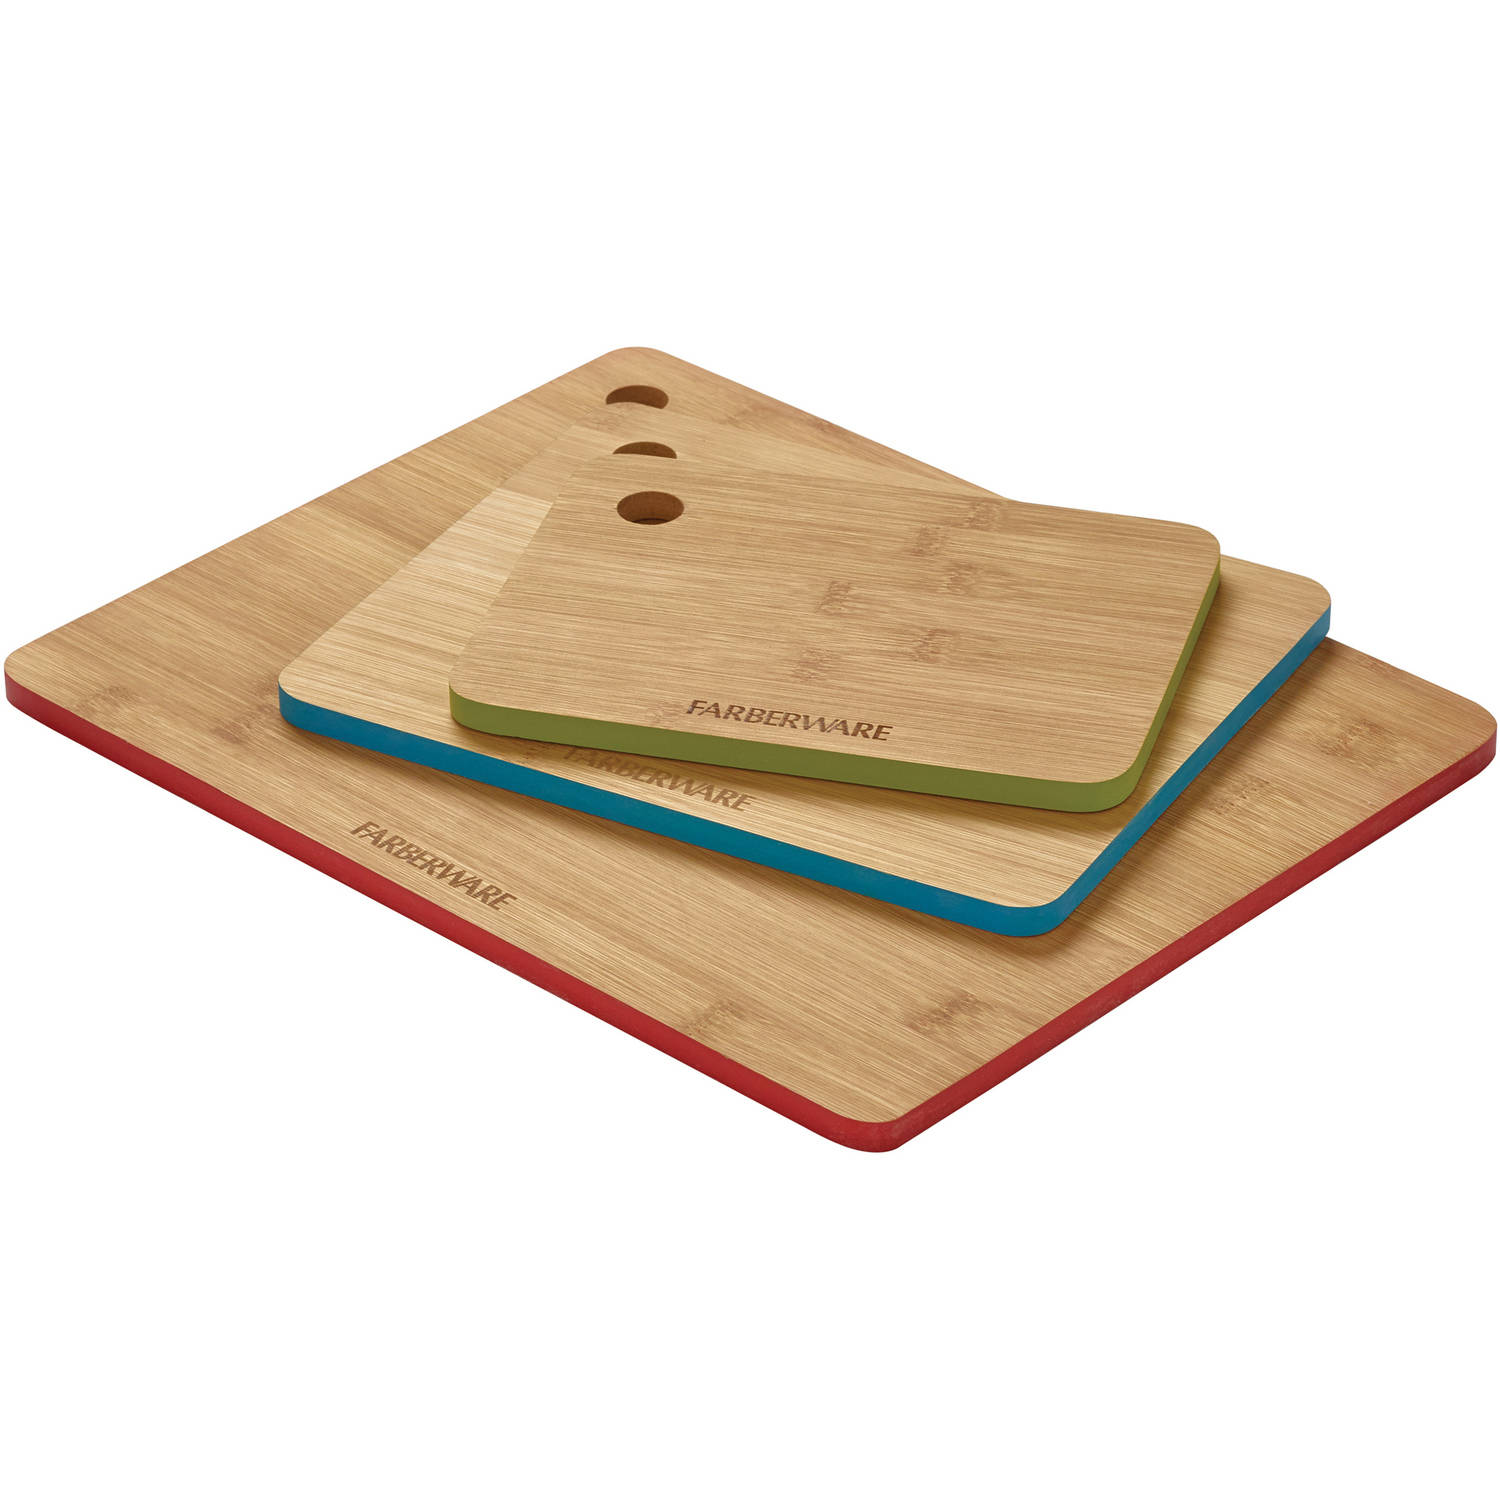 farberware 3piece bamboo cutting board set with color edges